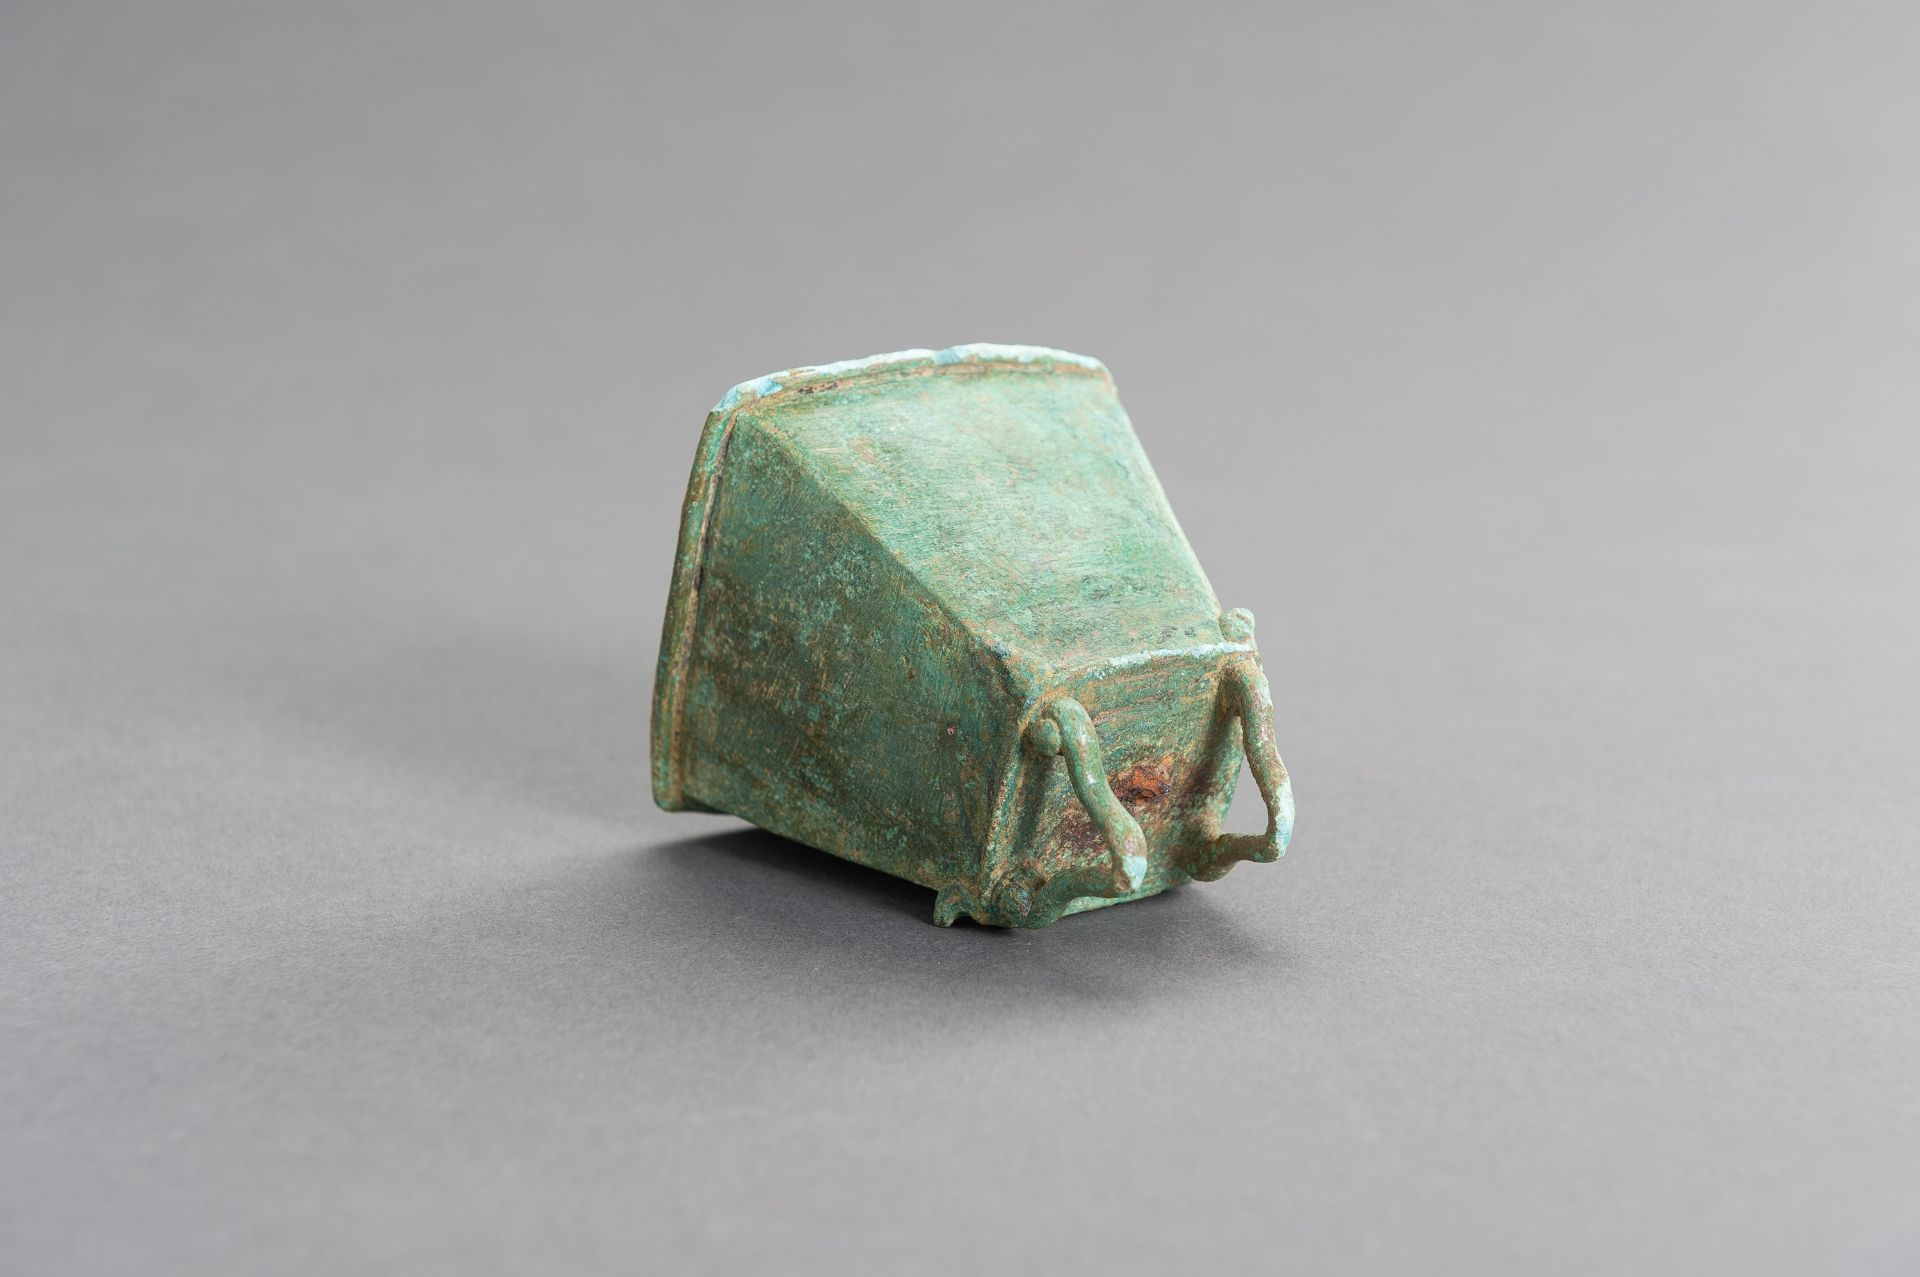 A SMALL BRONZE BELL - Image 6 of 9